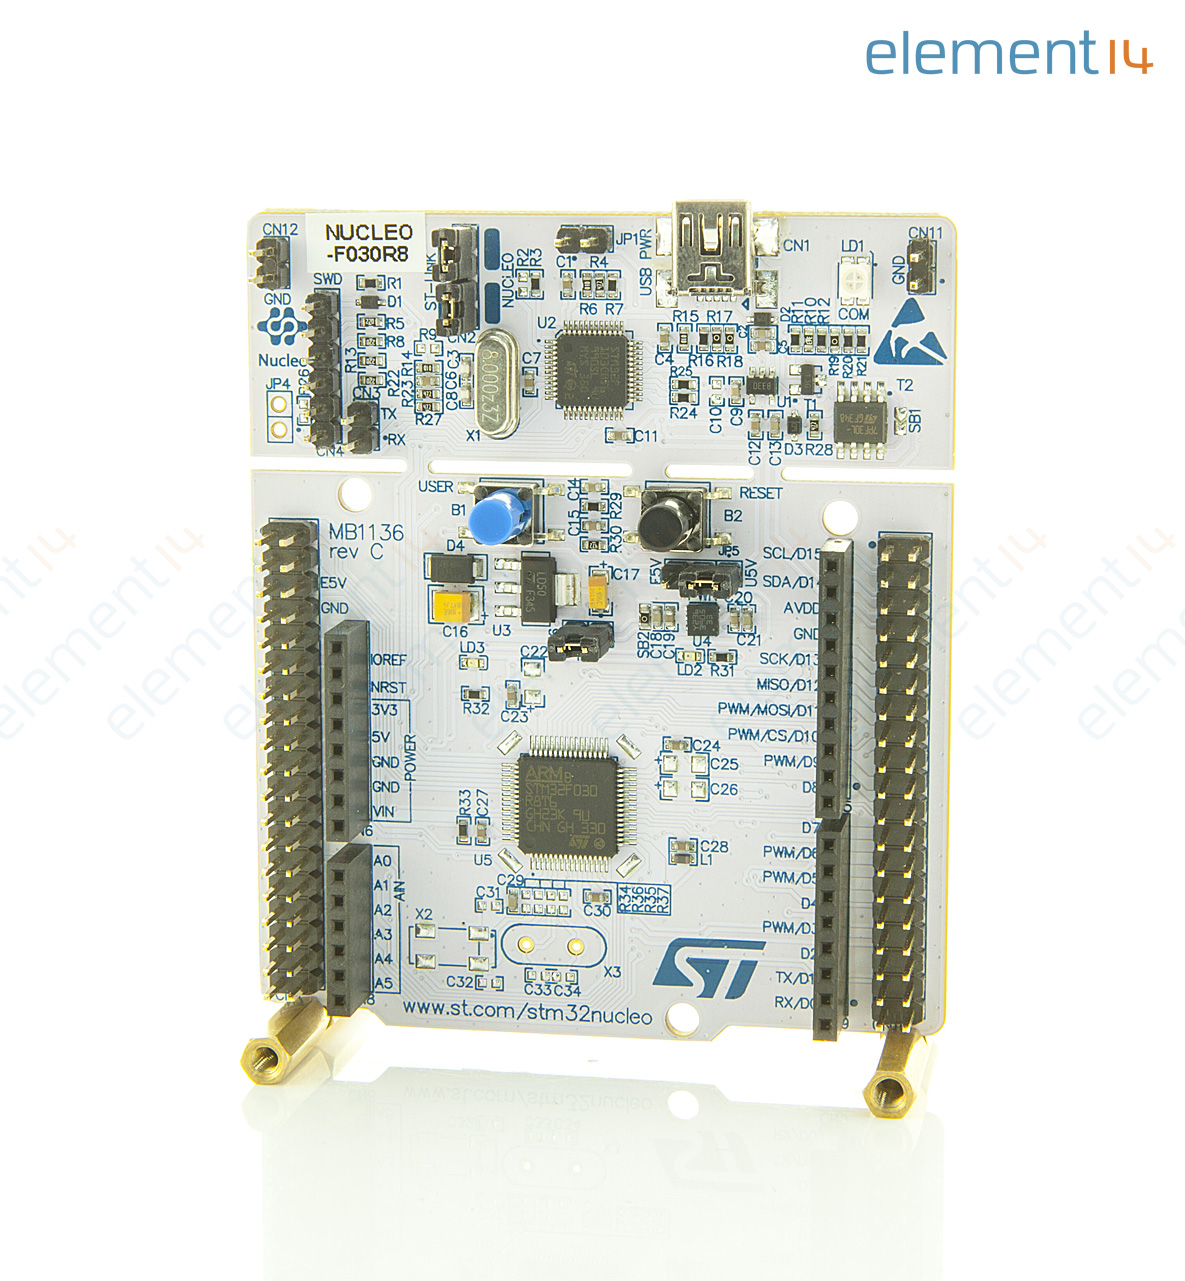 Nucleo F030r8 Stmicroelectronics Development Board Stm32 64 By Arduino Low Powered Solenoid Driver Hobby For The Hobbies Stm32f030r8t6 Mcu And St Morpho Connectivity